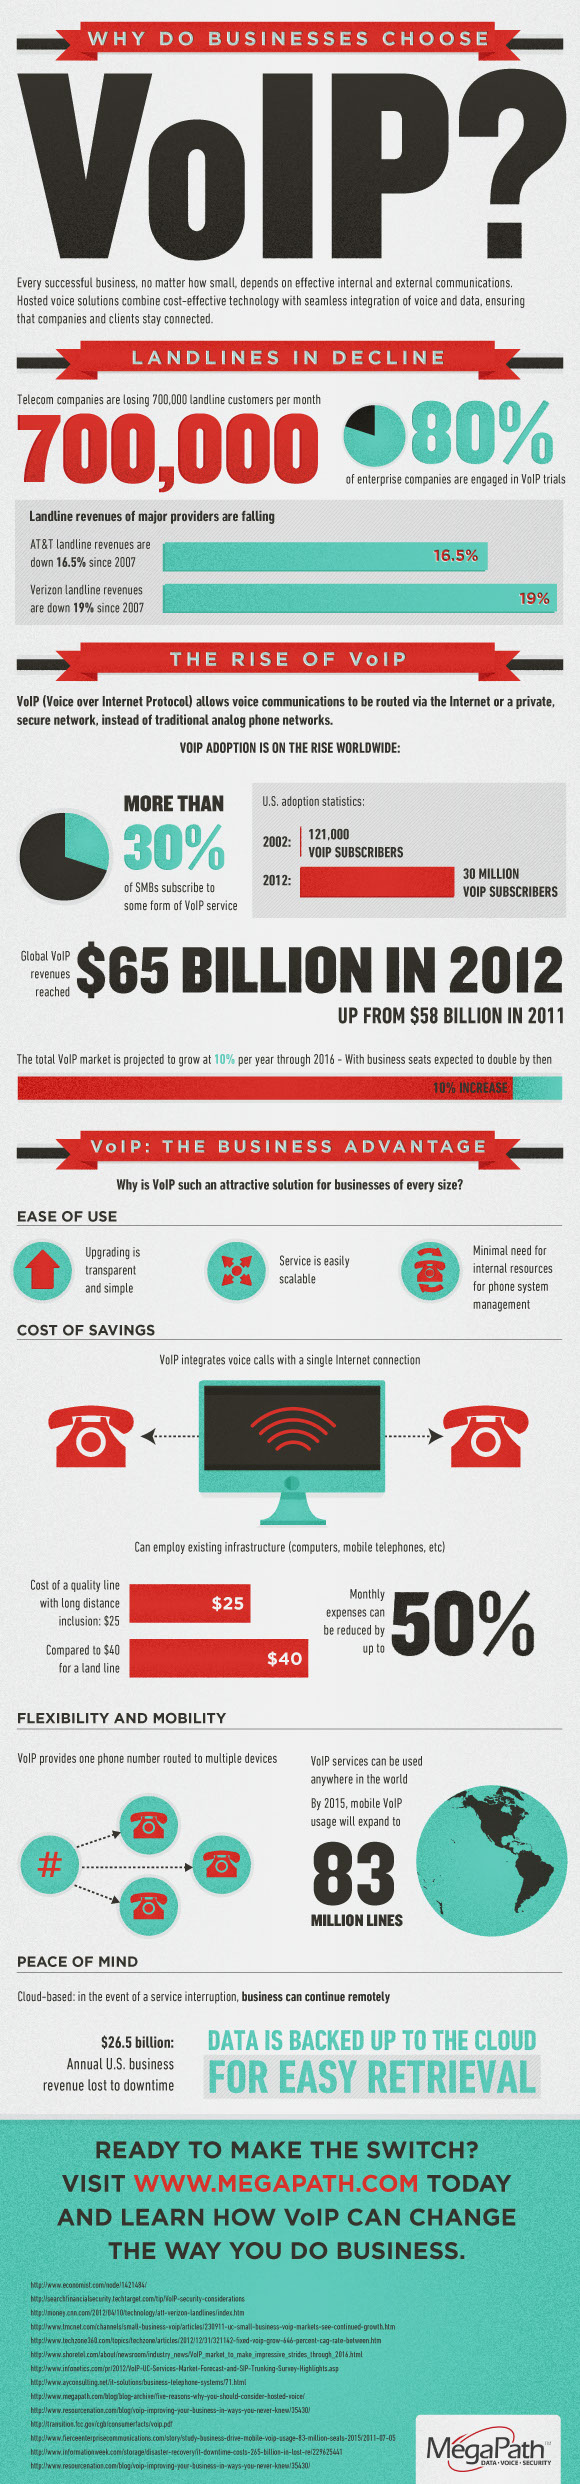 VOIP for Business-Infographic